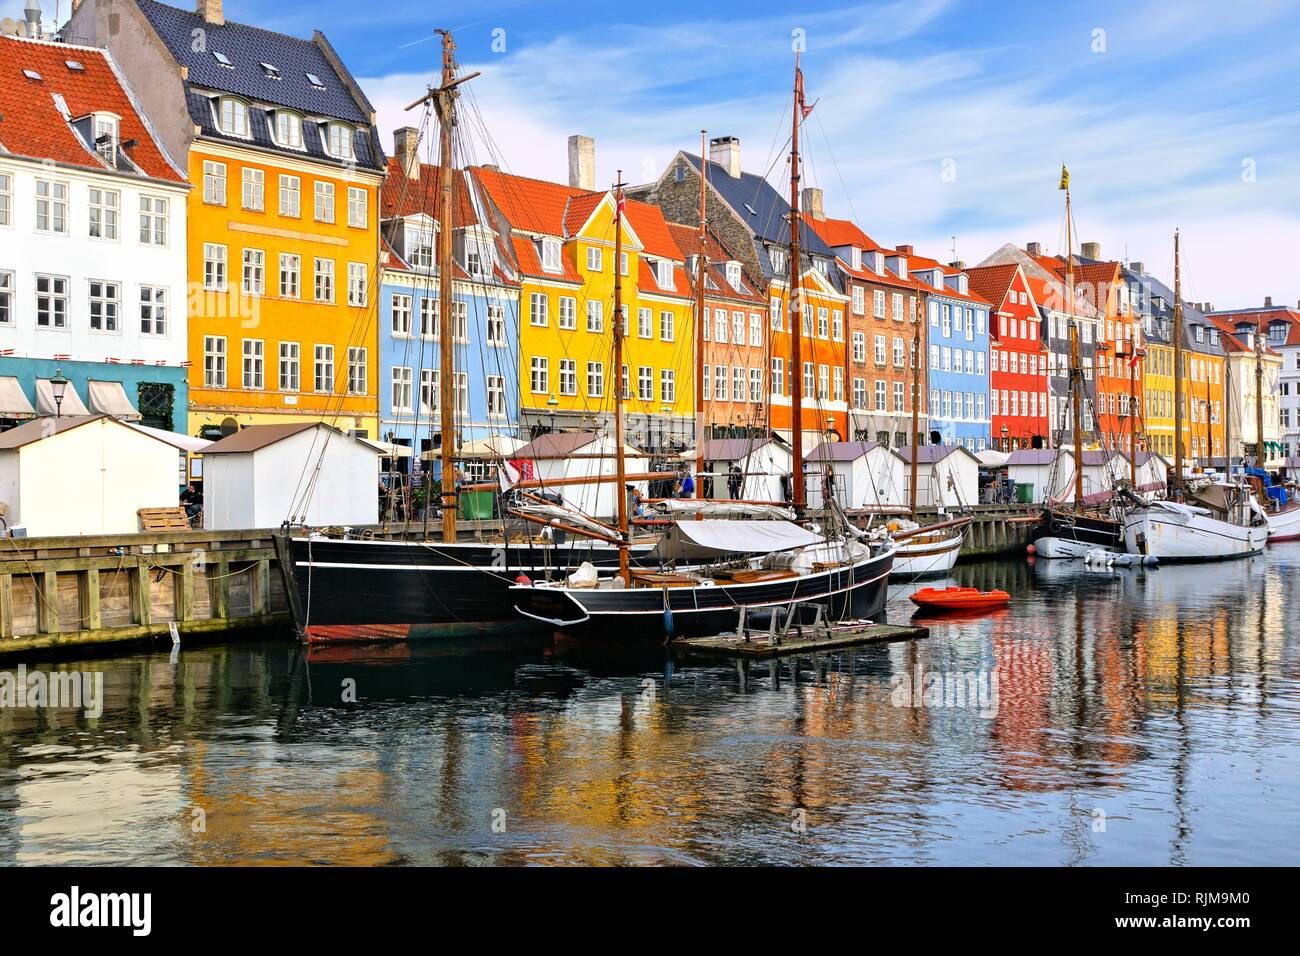 Colorful waterfront buildings and ships along the historic Nyhavn canal, Copenhagen, Denmark Stock Photo